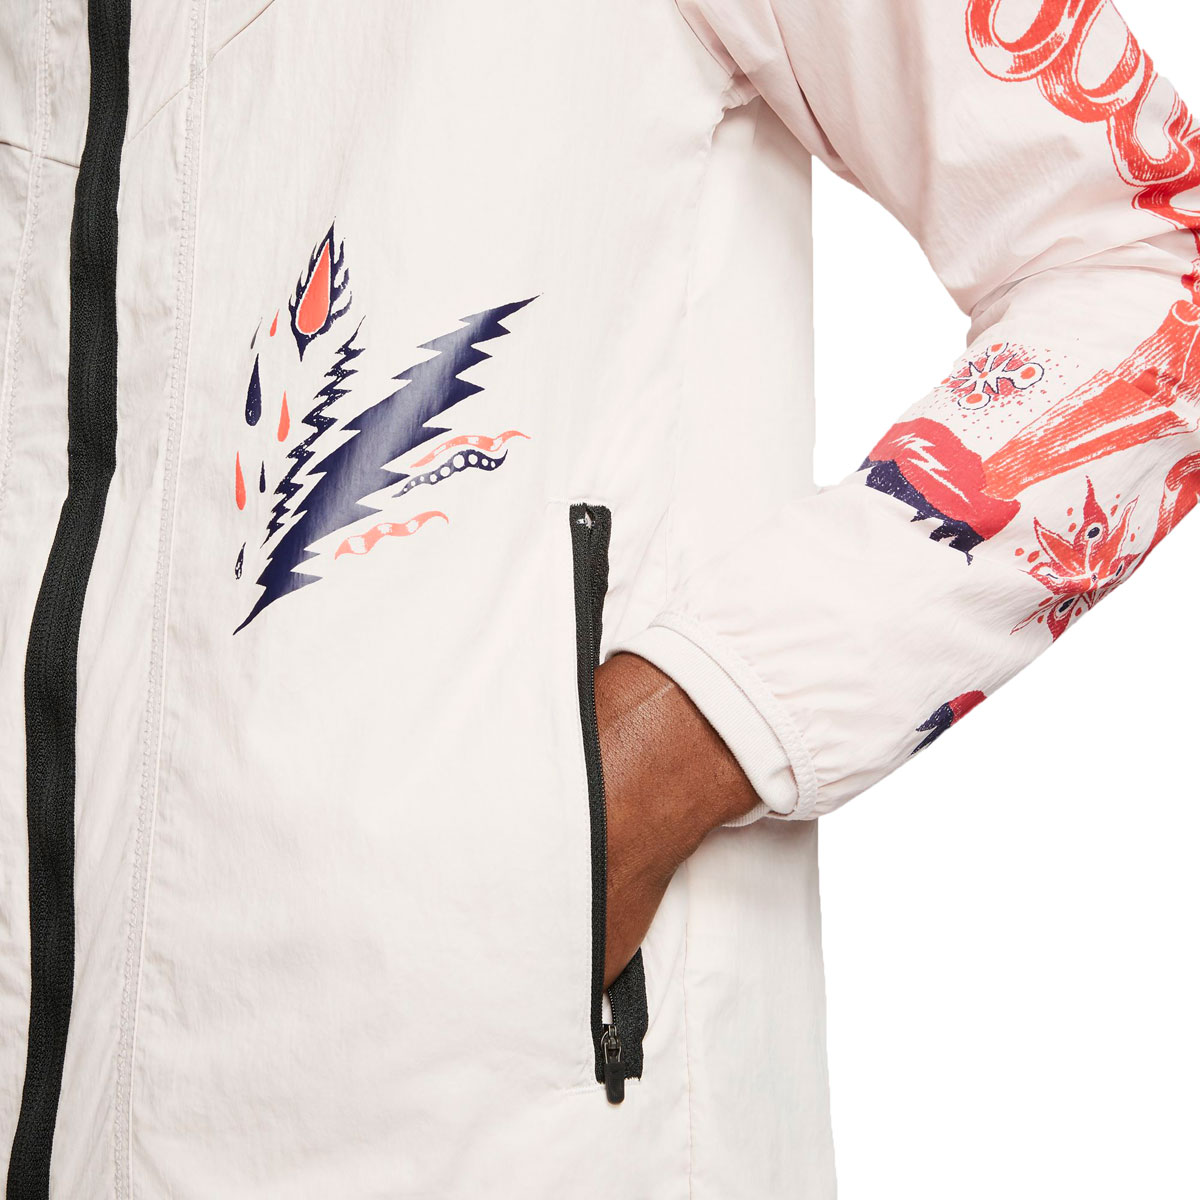 Men's Nike Windrunner Wild Run Running Jacket - Color: Barely Rose/Reflective Silver - Size: S, Barely Rose/Reflective Silver, large, image 3